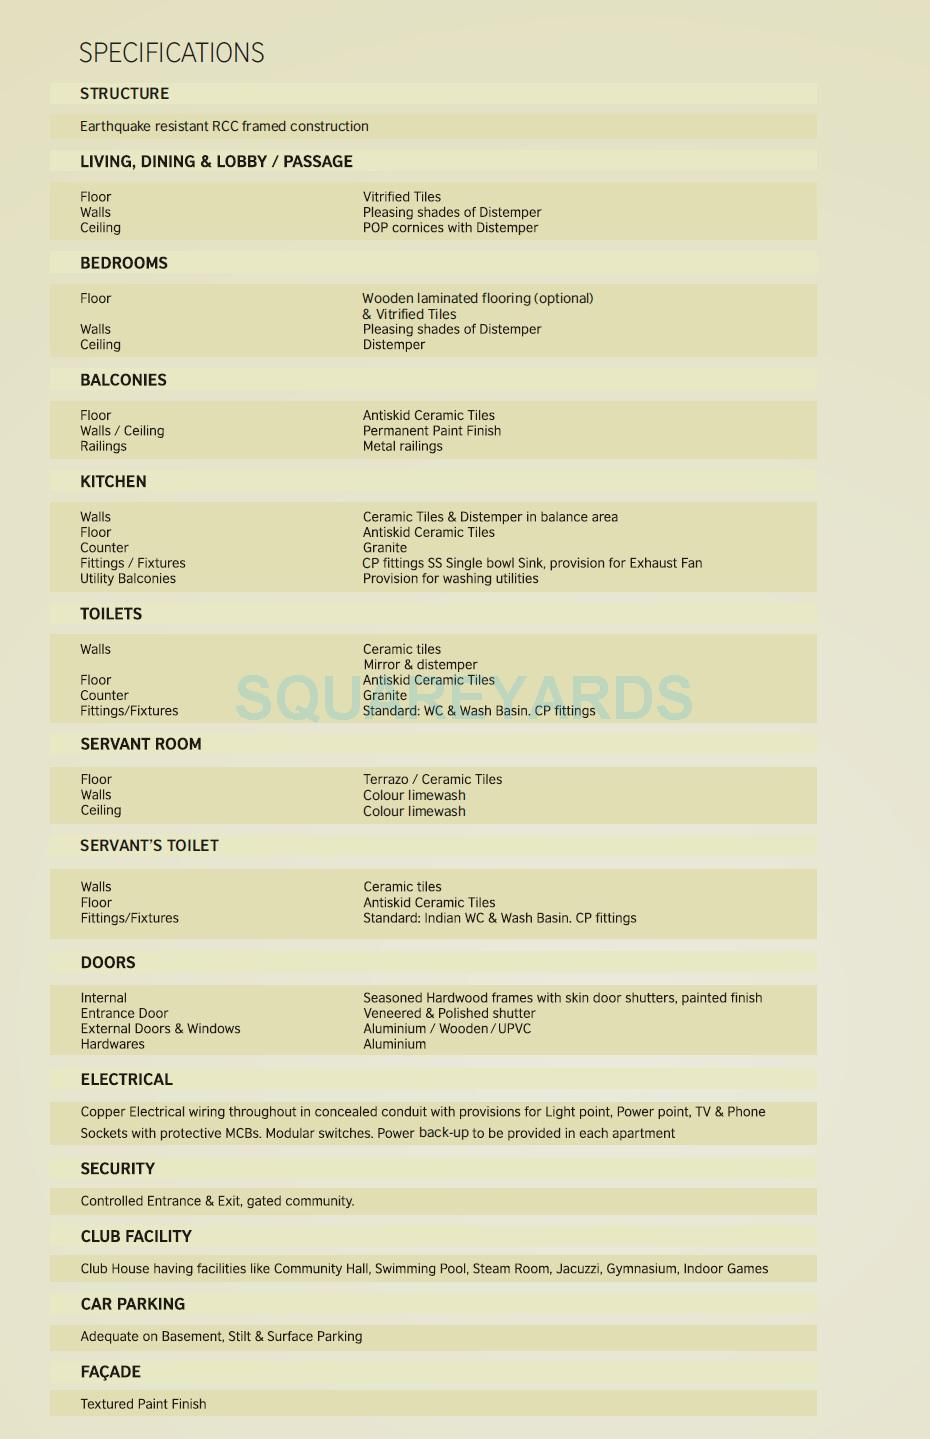 specification-Picture-universal-greens-2129383